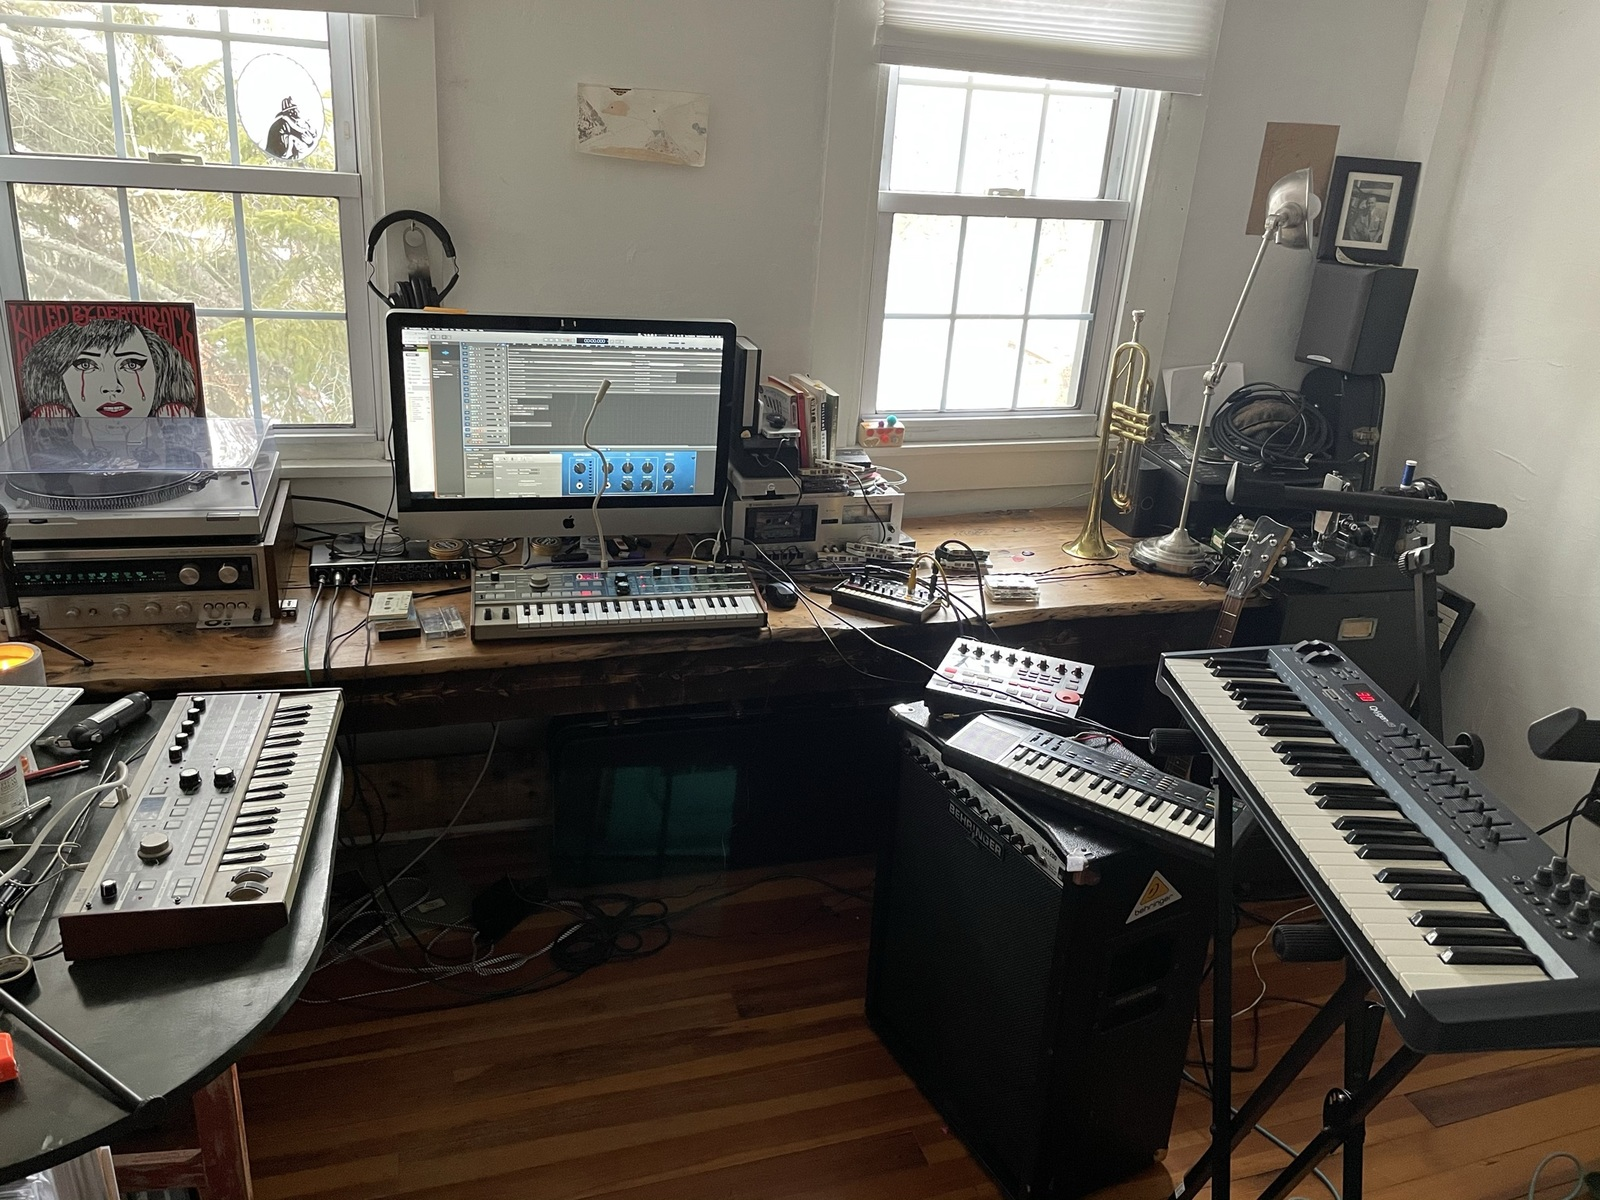 Photo of Casio SK-1 and more gear in a studio, Bass, and synths